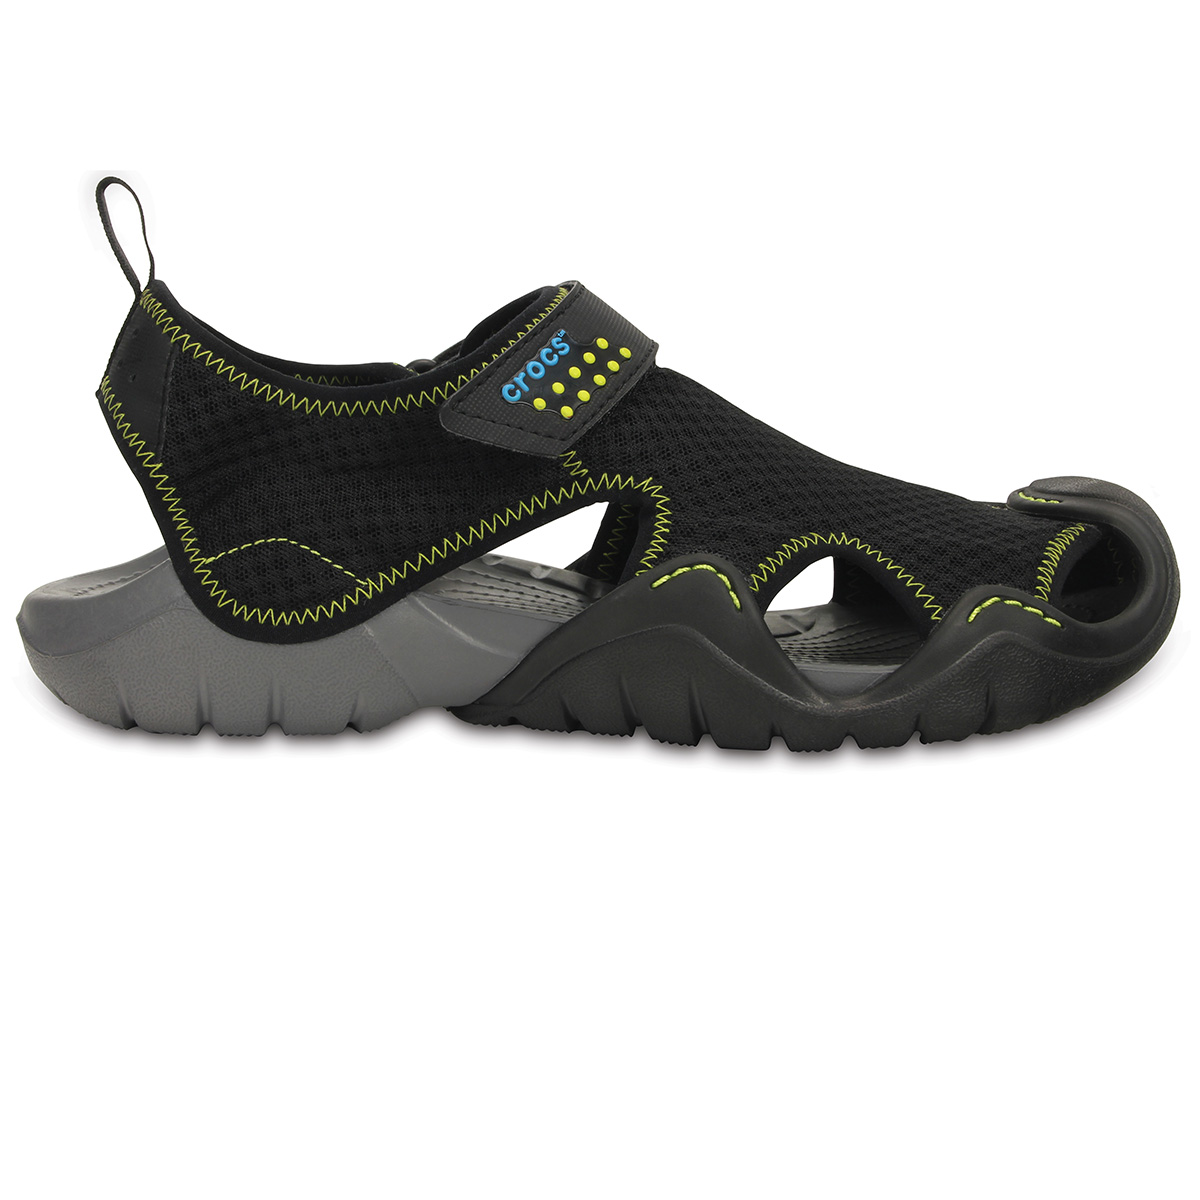 Crocs Swiftwater Sandal M